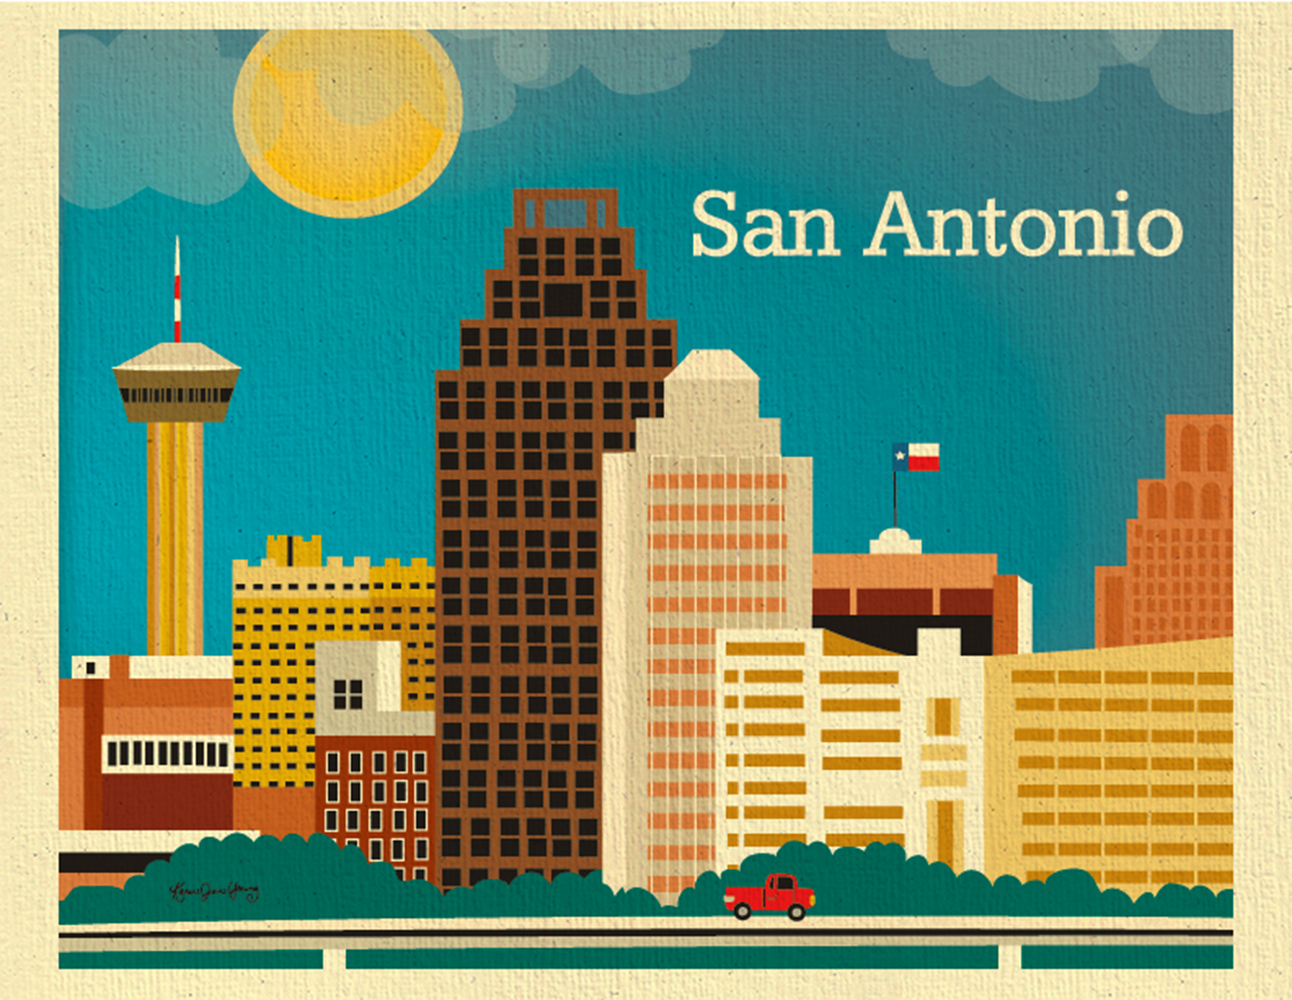 San Antonio Texas Skyline Poster Texan Wall Art For